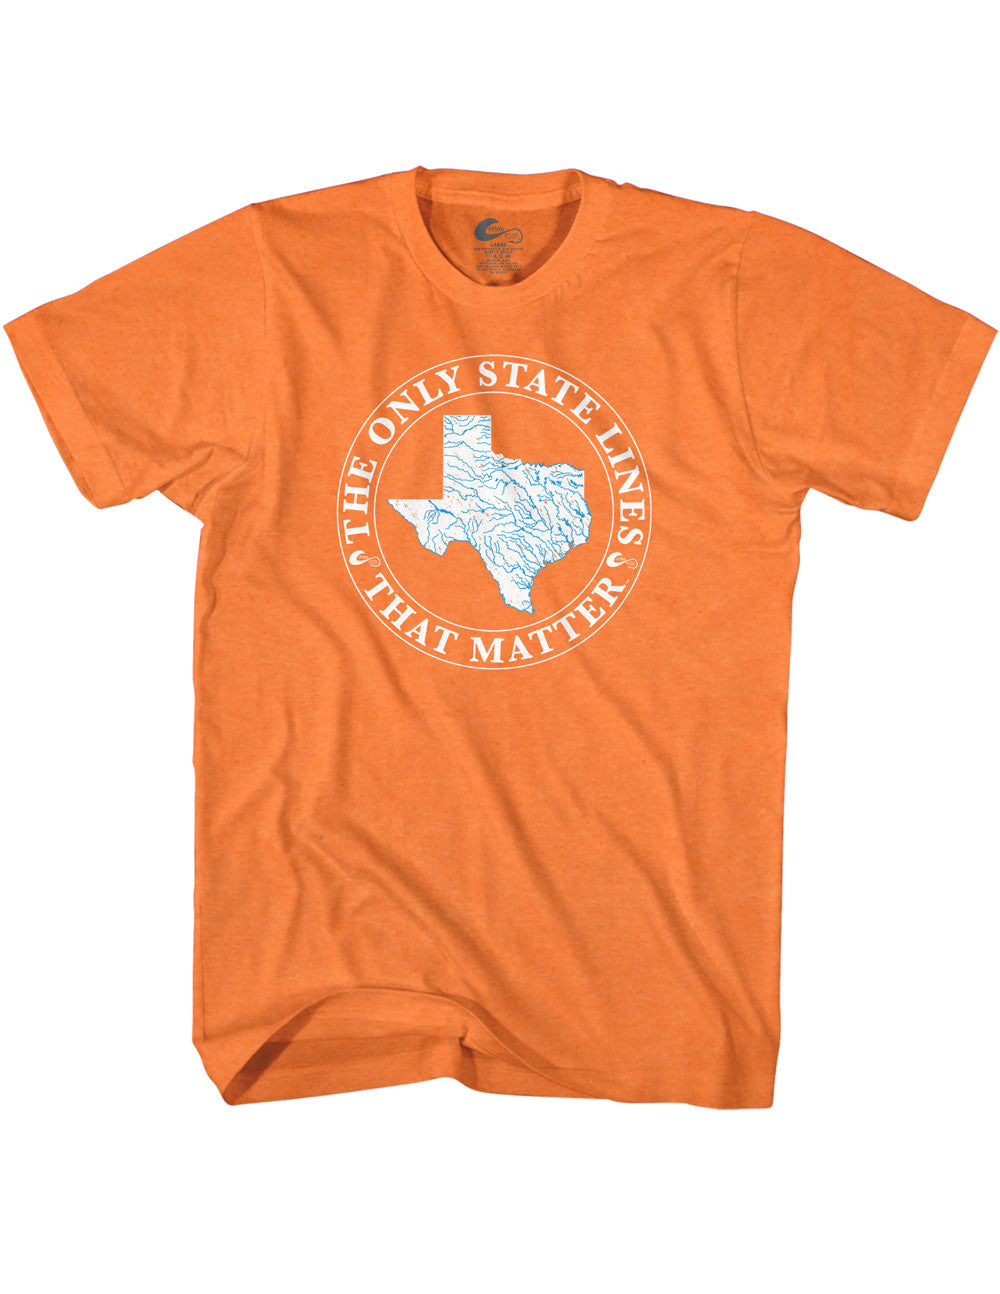 Texas State Waterways T-Shirt